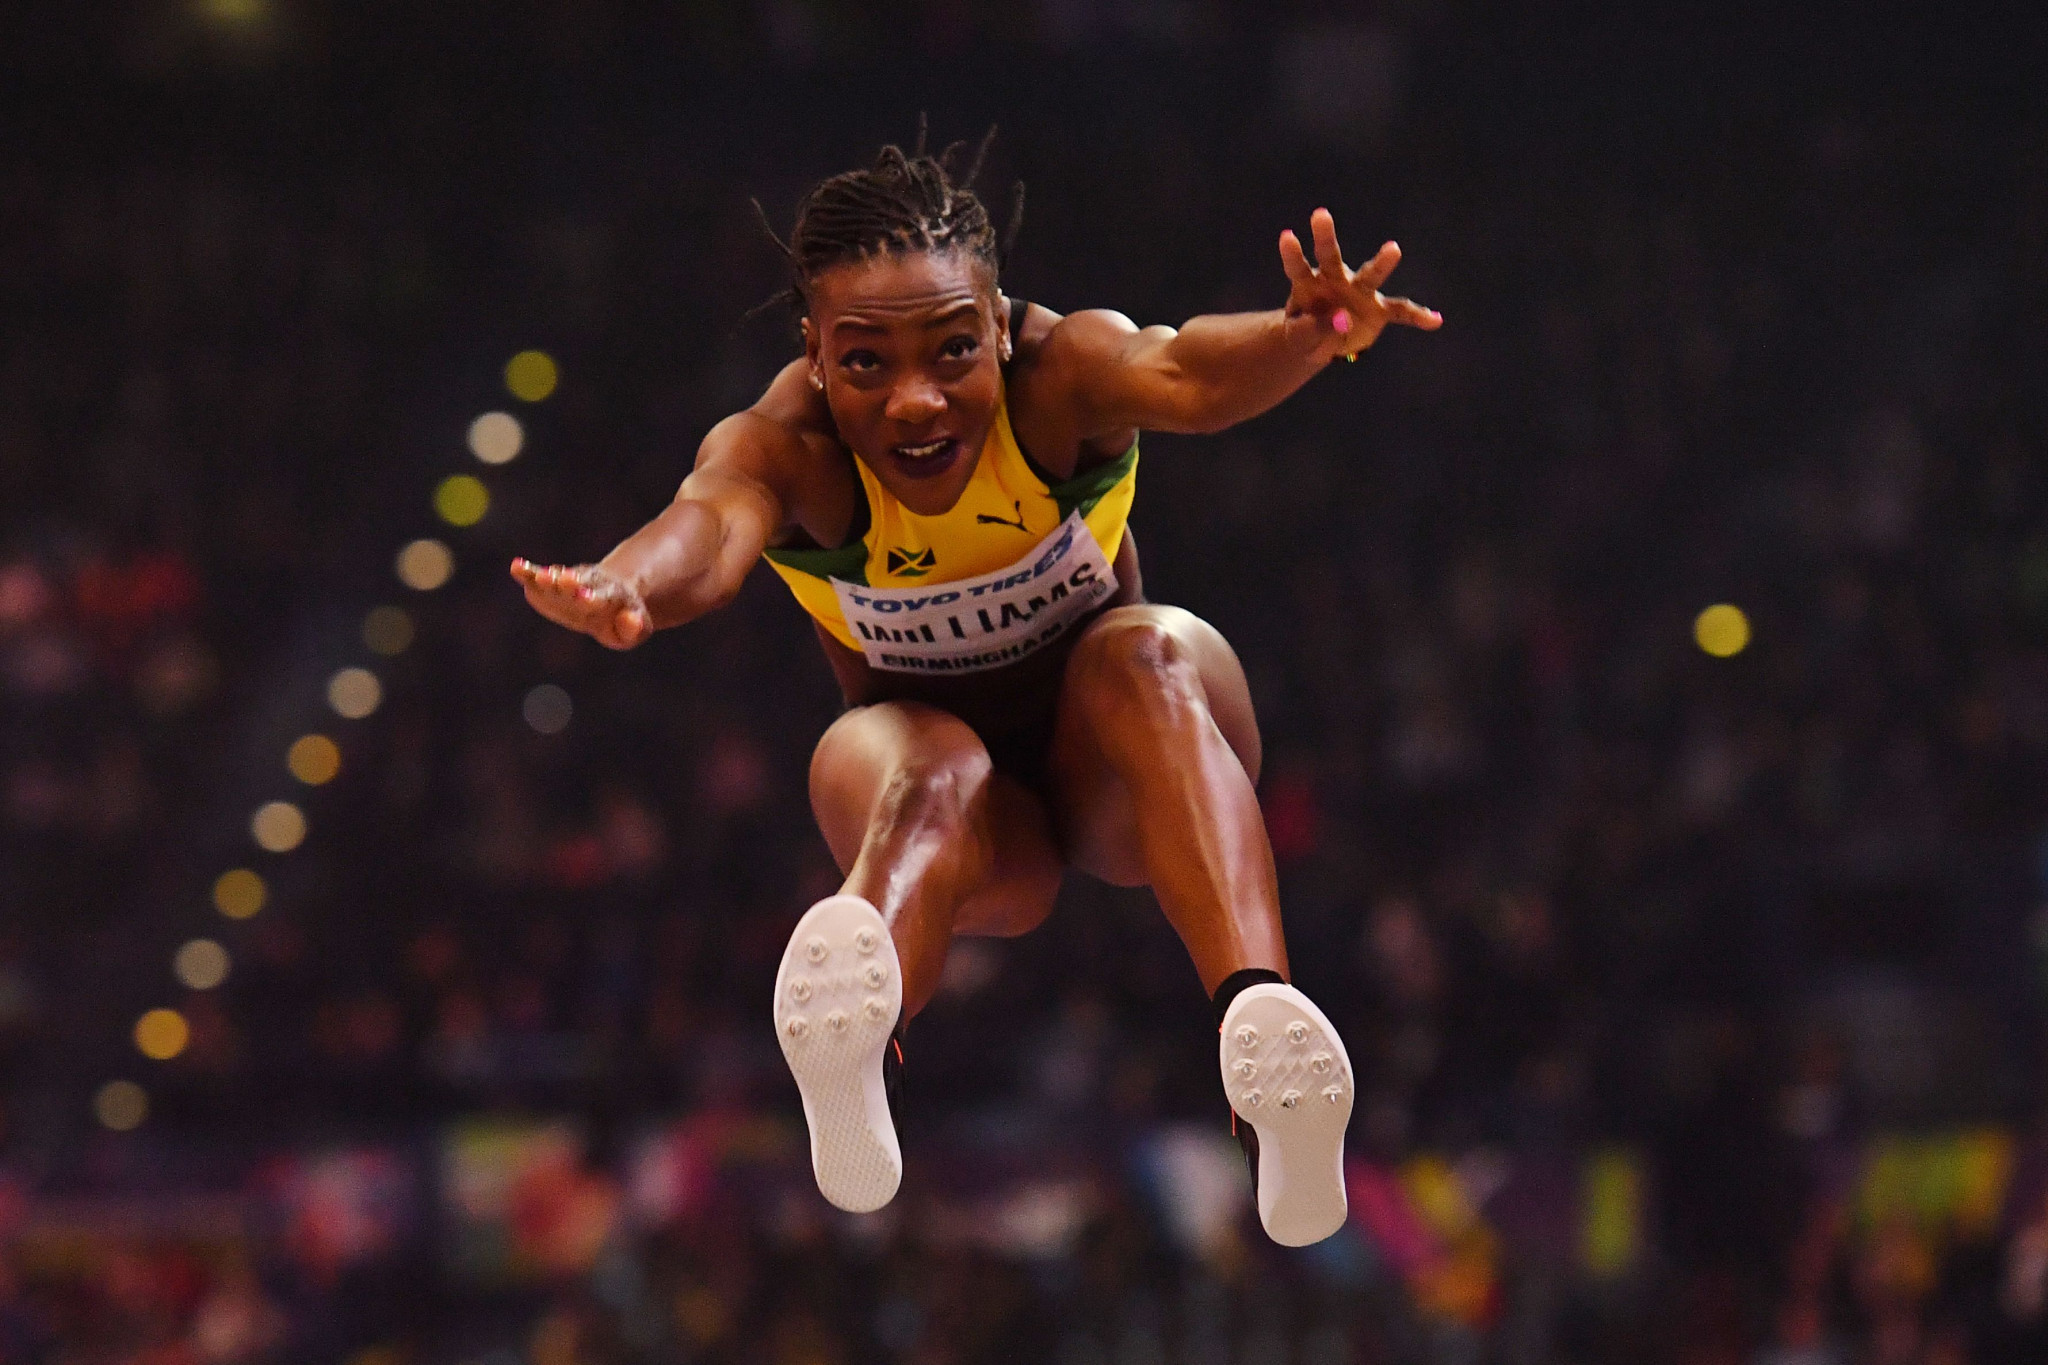 Kimberley Williams, winner of the silver medal in the triple jump at the IAAF World Indoor Championships in Birmingham, is among Jamaica's team for Gold Coast 2018 ©Getty Images